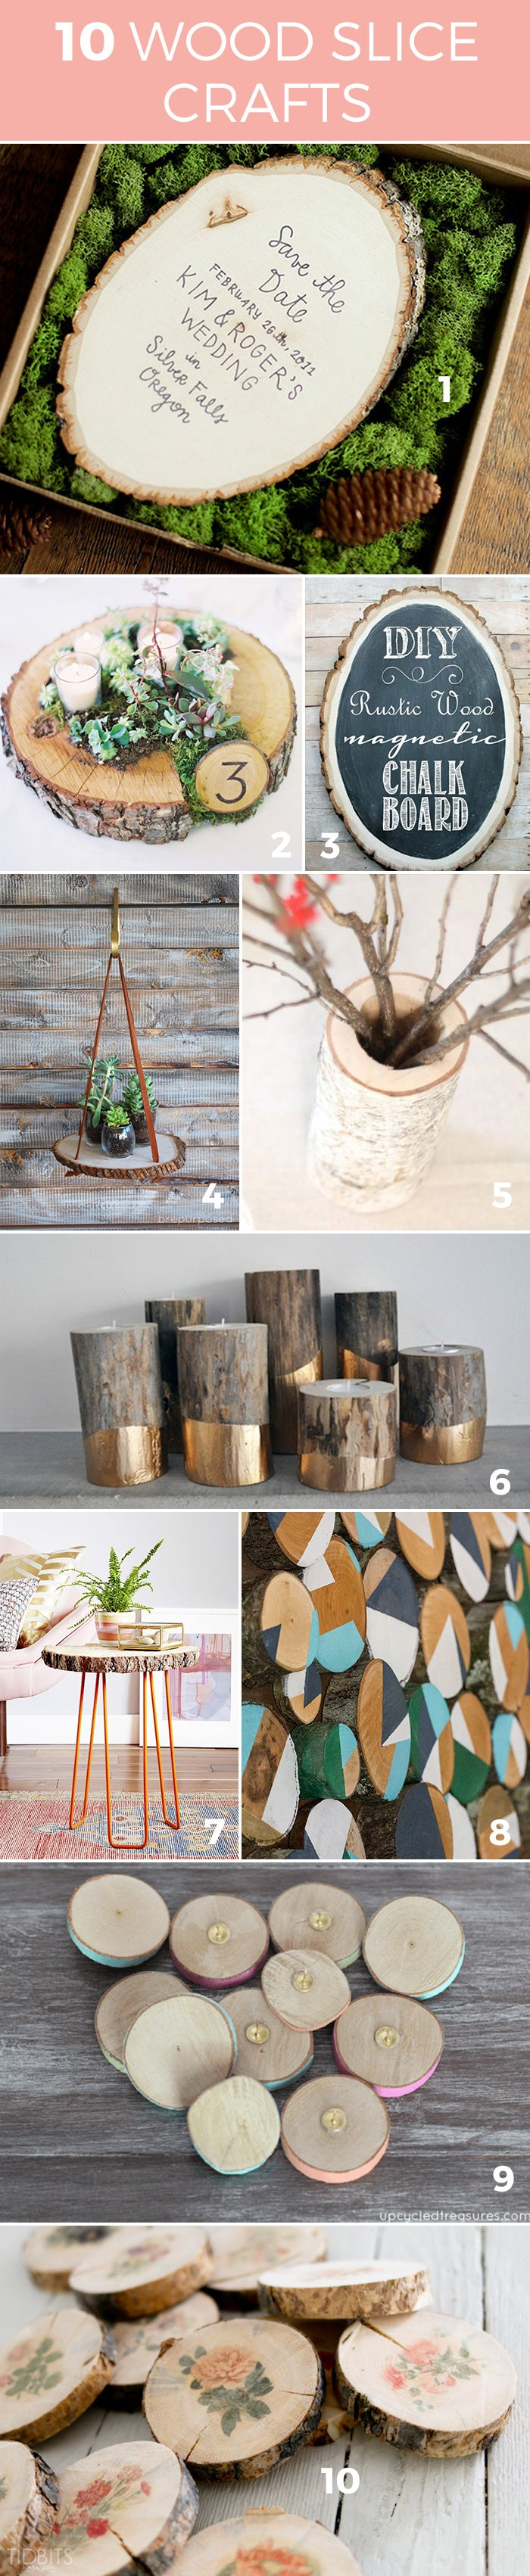 10-wood-slice-crafts-Hello-Luvvy